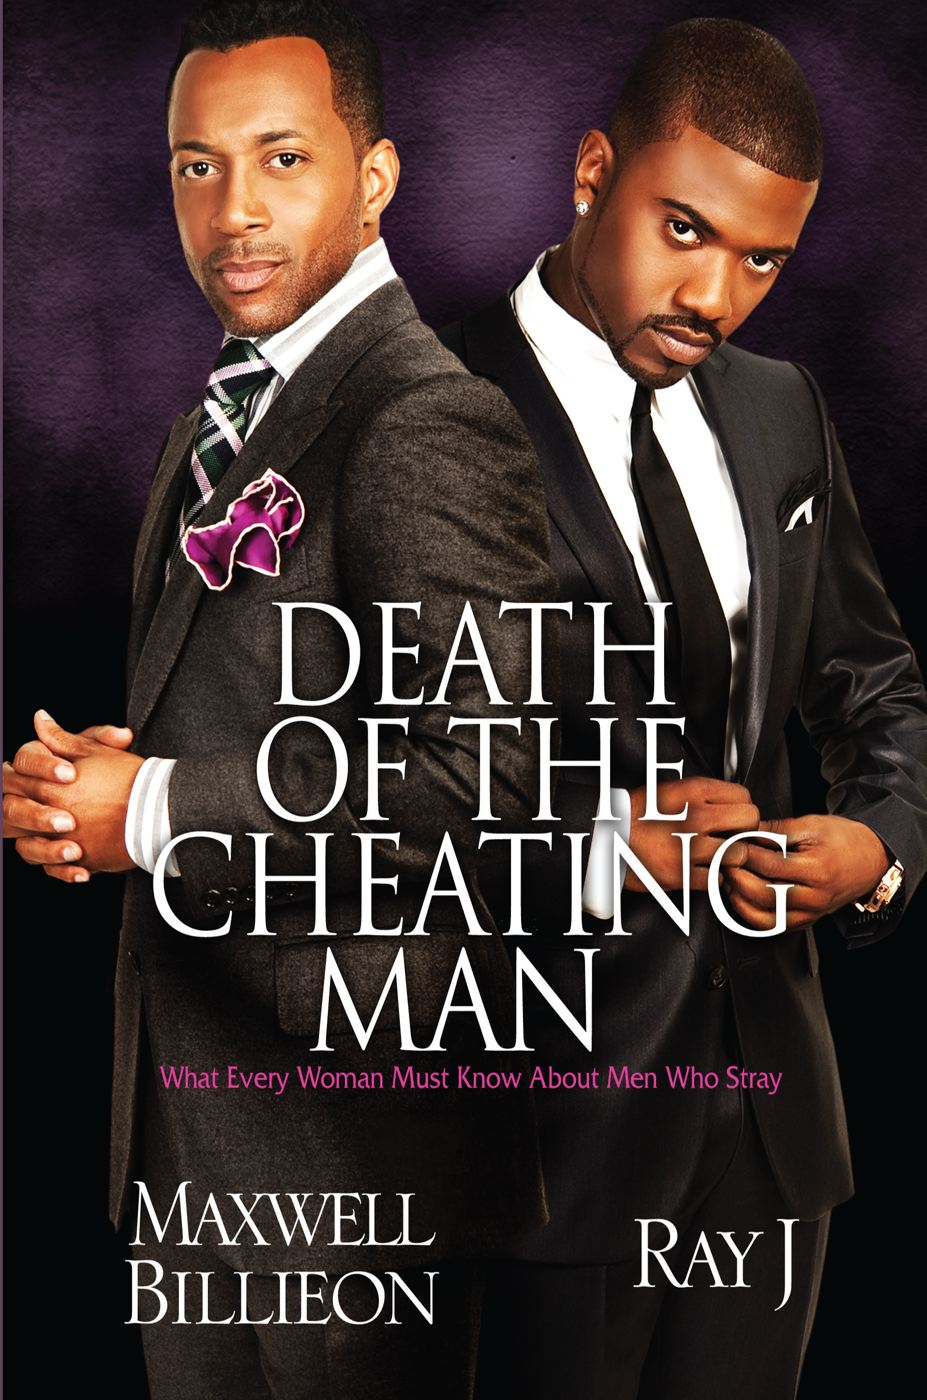 Death of the Cheating Man By: Maxwell Billieon,Ray J